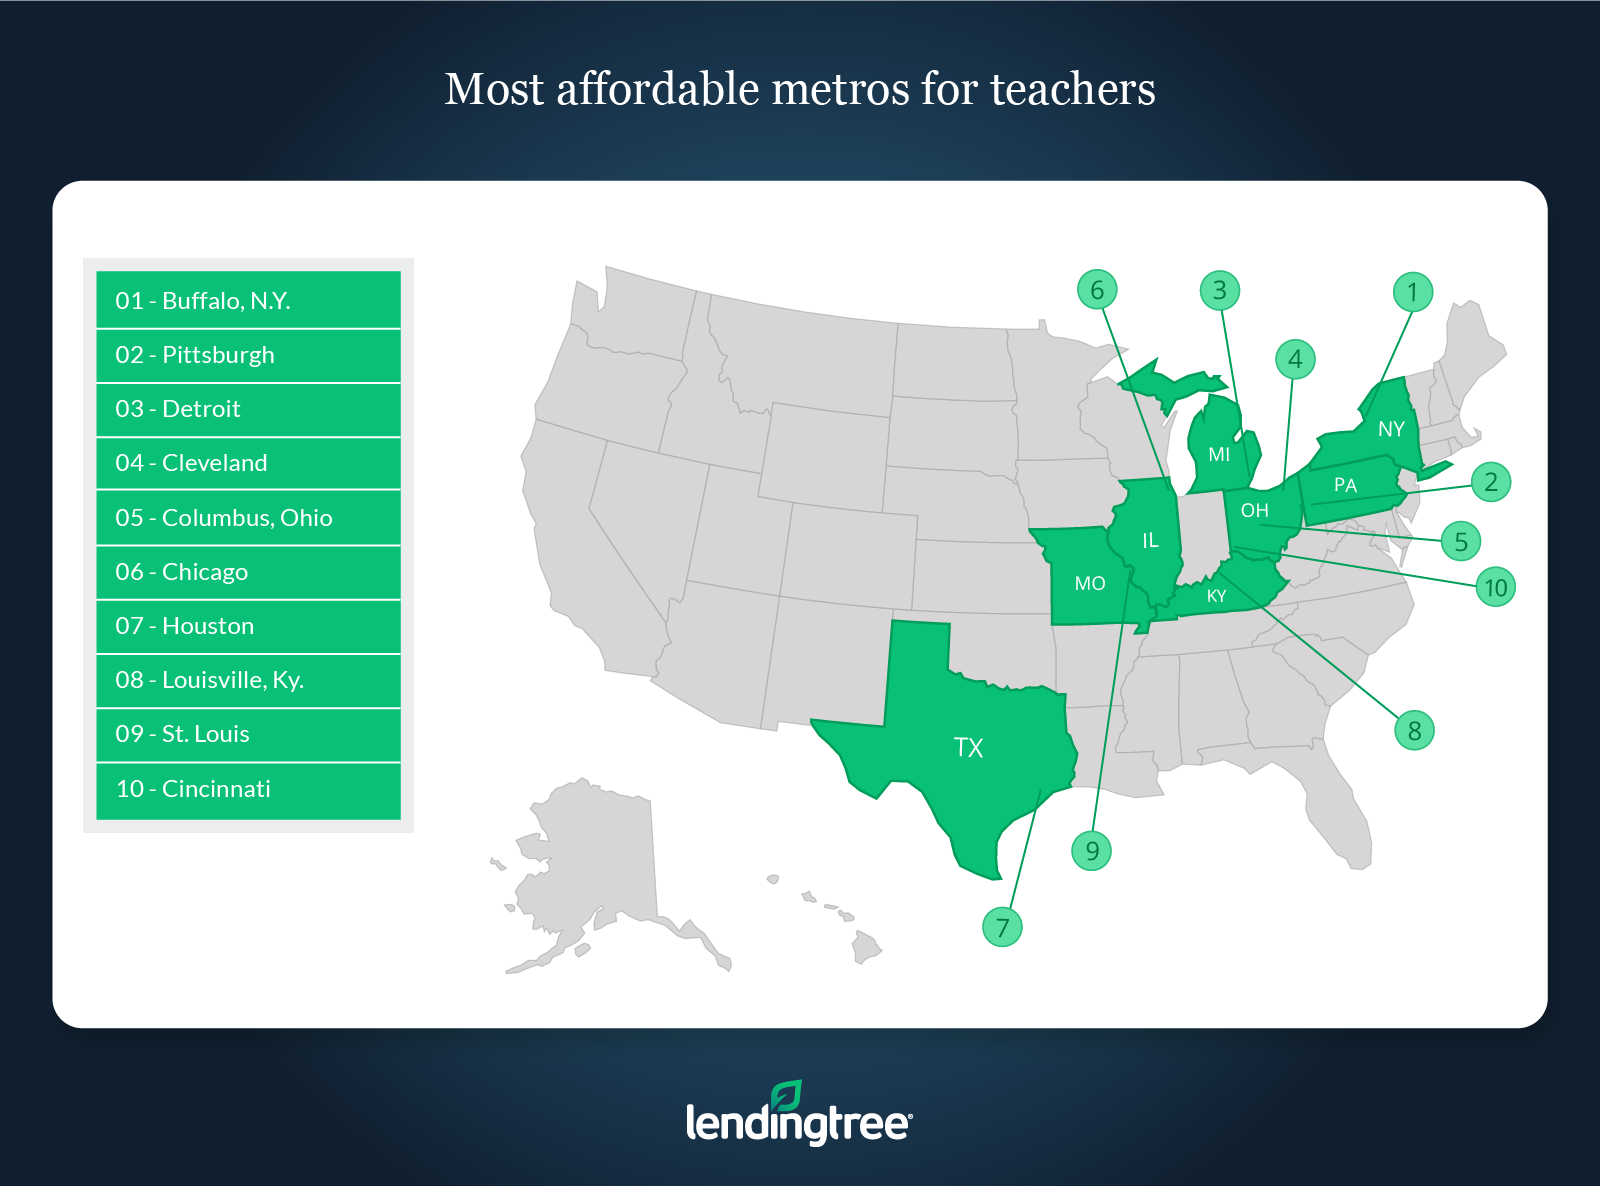 Most affordable metros for teachers